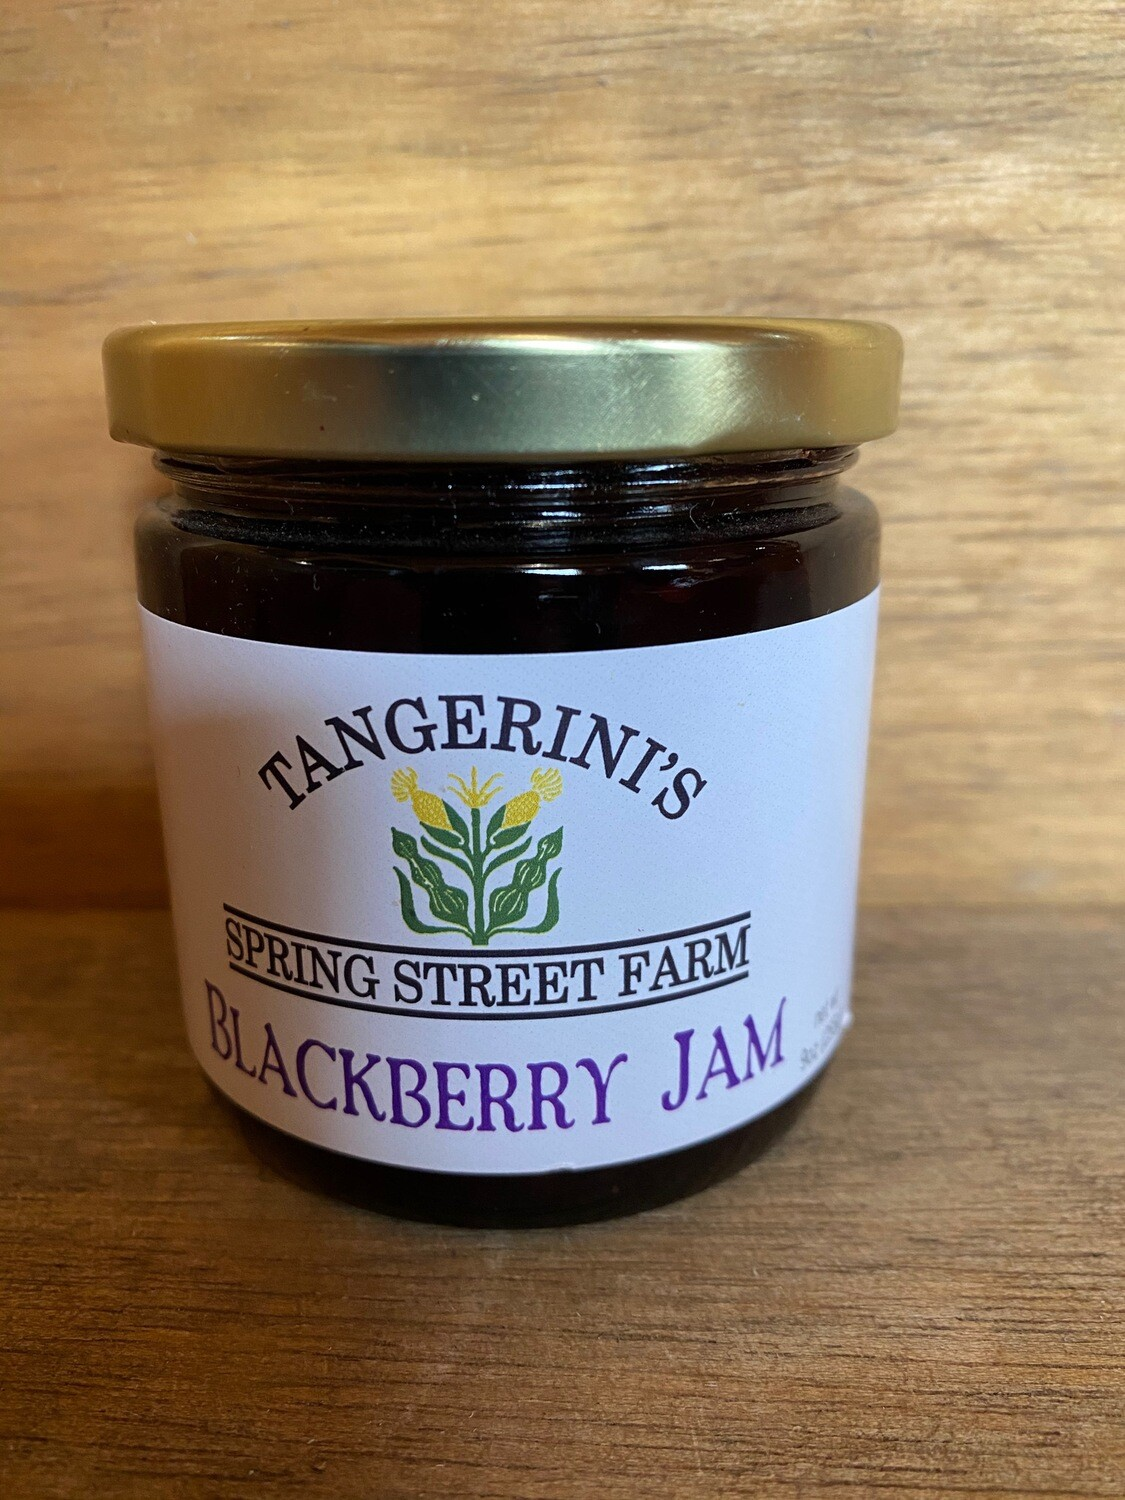 Blackberry Jam | Tangerini's Farm